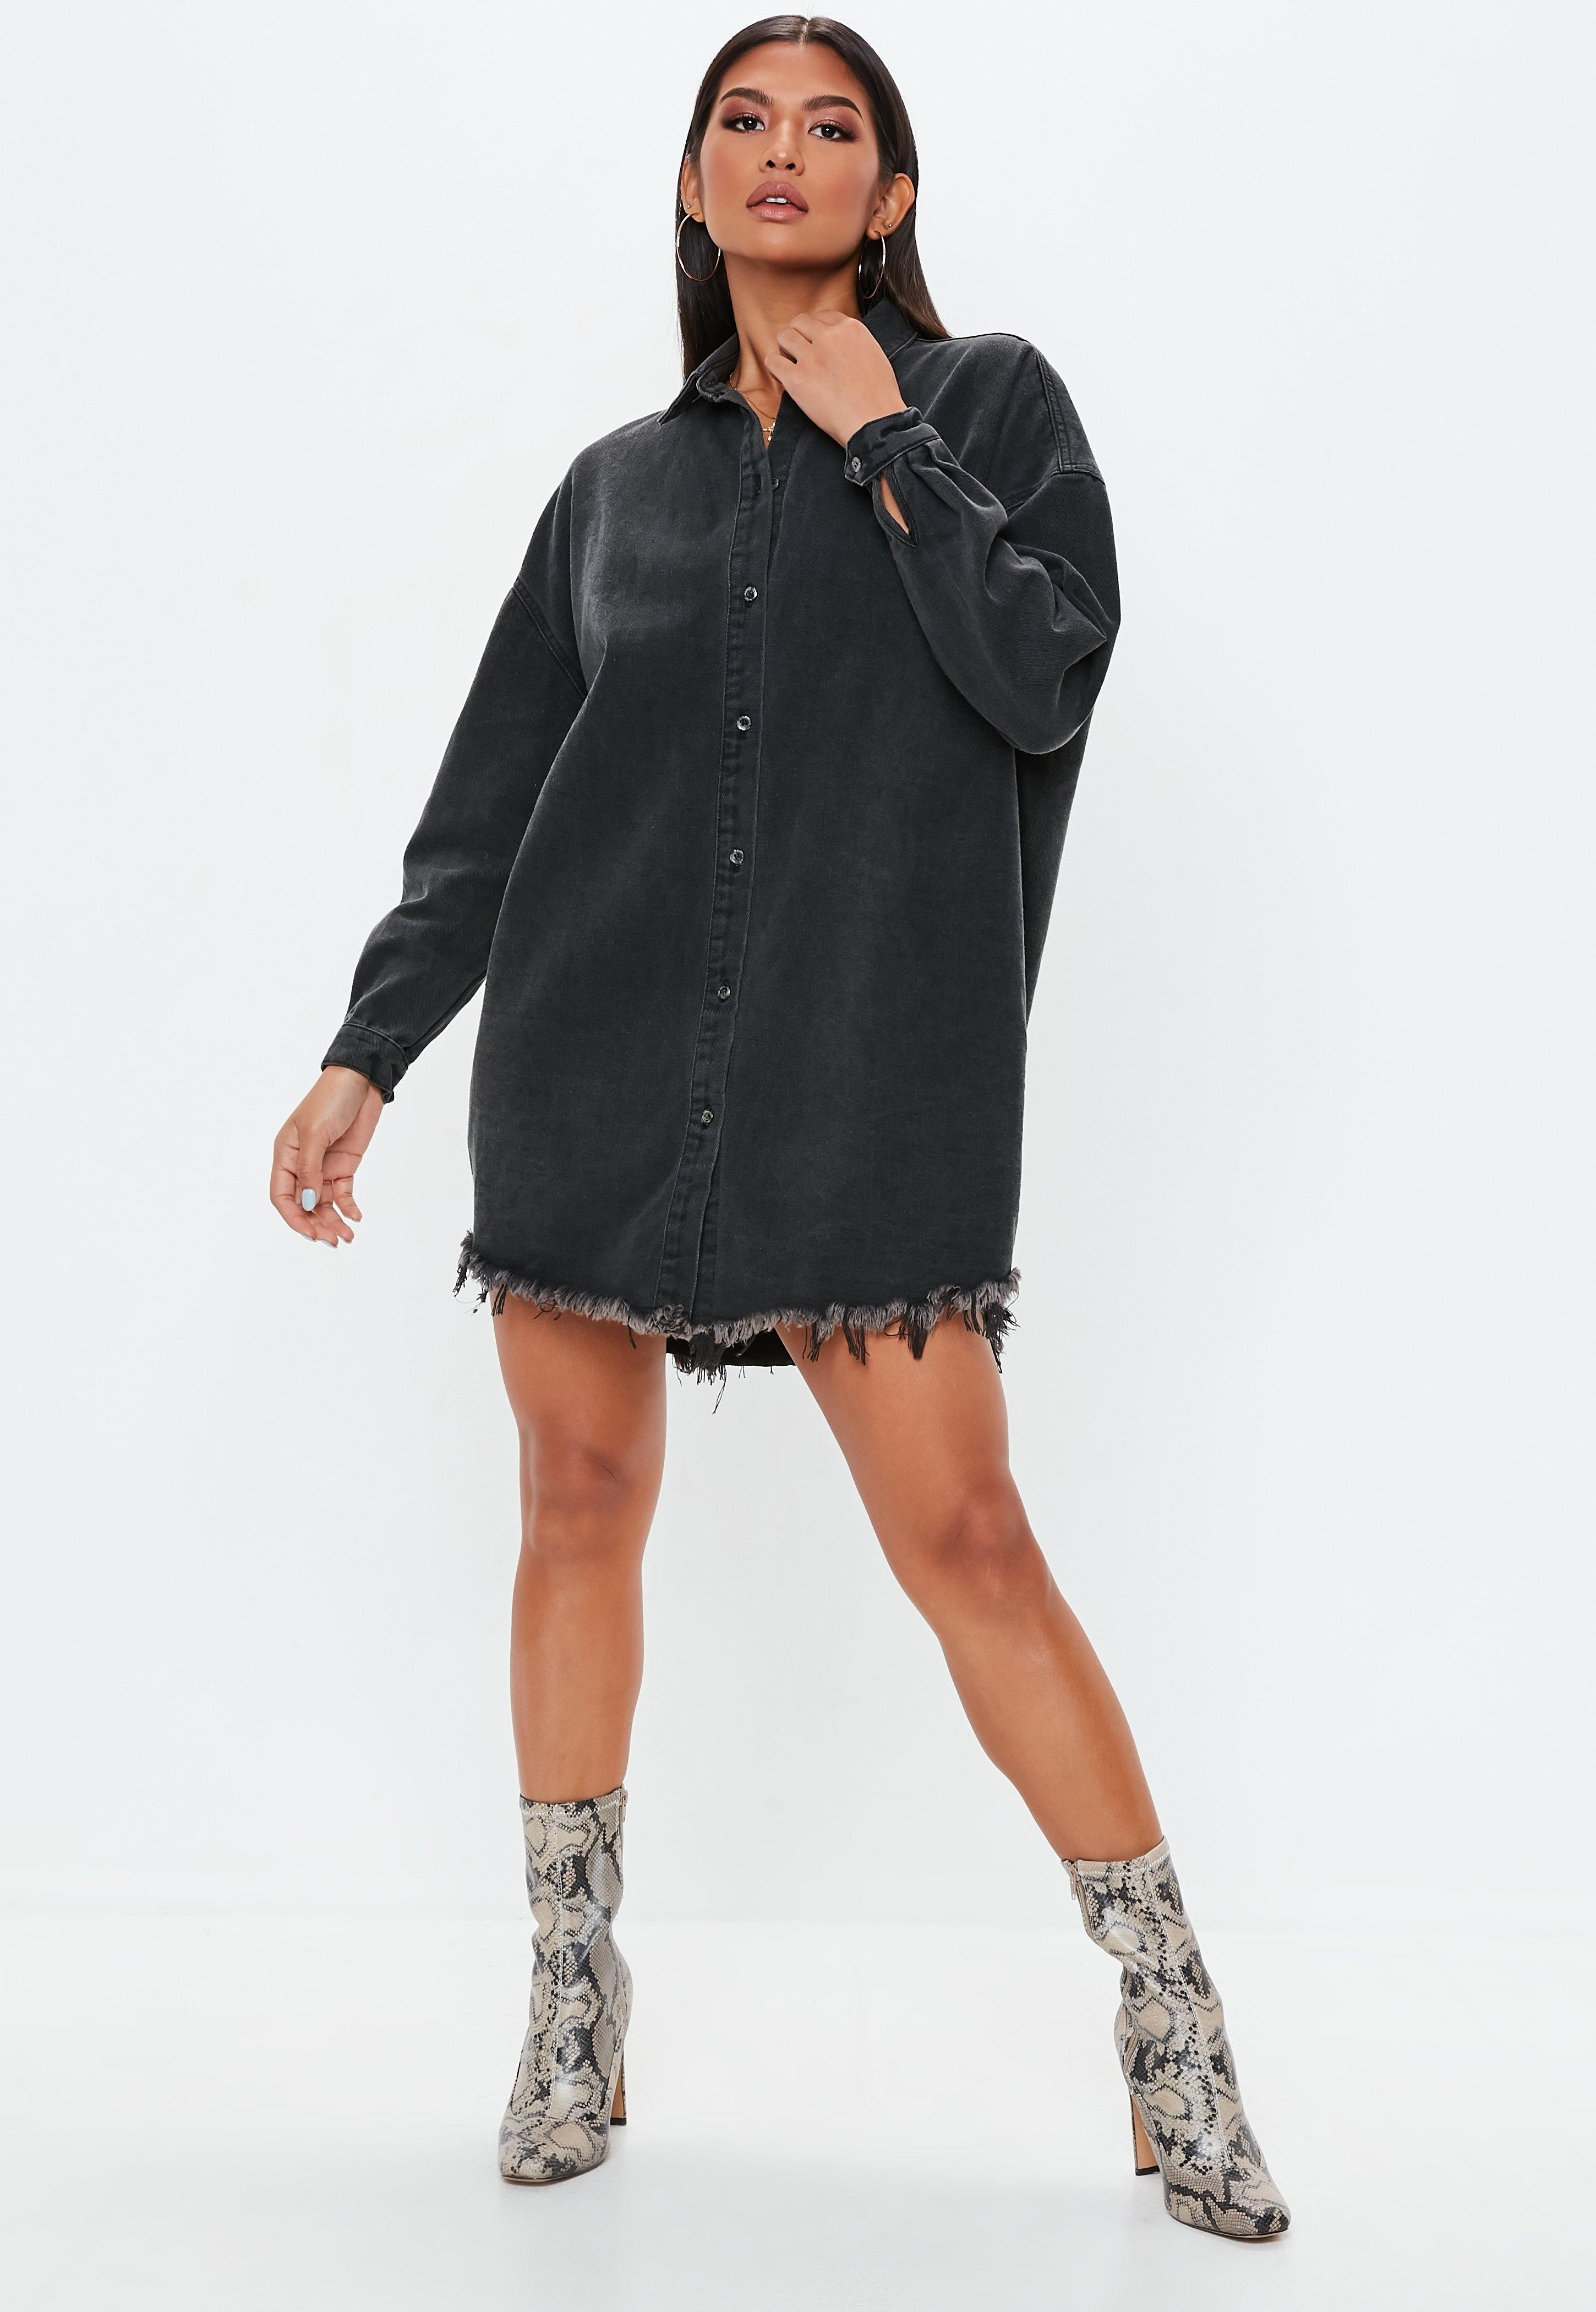 b2b166a770c Missguided - Black Oversized Denim Shirt Dress - Lyst. View fullscreen